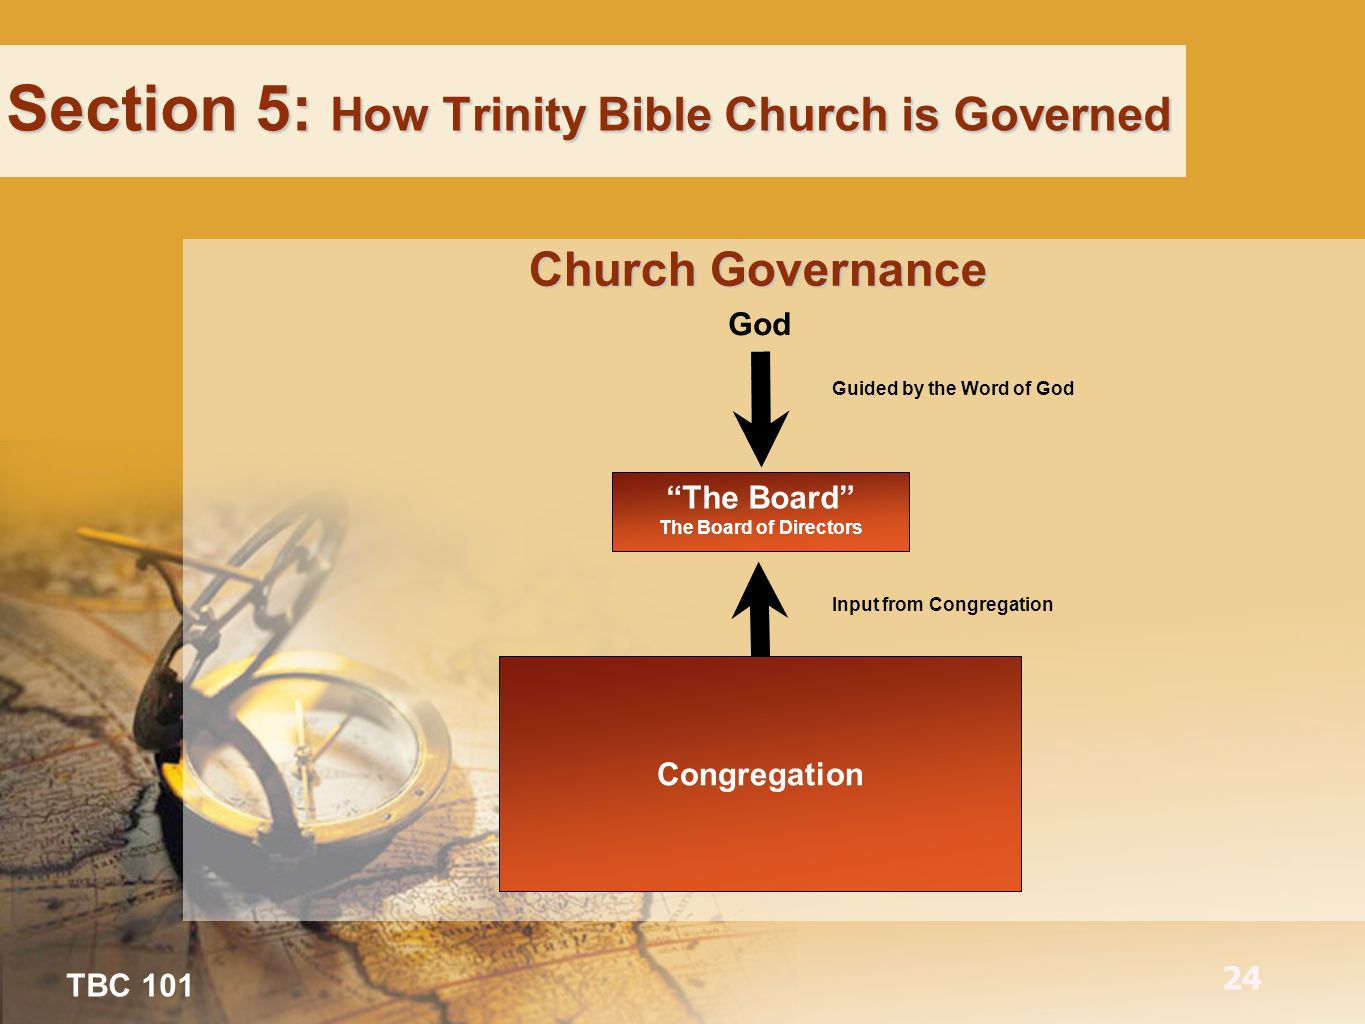 TBC 101 24 Section 5: How Trinity Bible Church is Governed Church Governance The Board The Board of Directors Congregation God Input from Congregation Guided by the Word of God